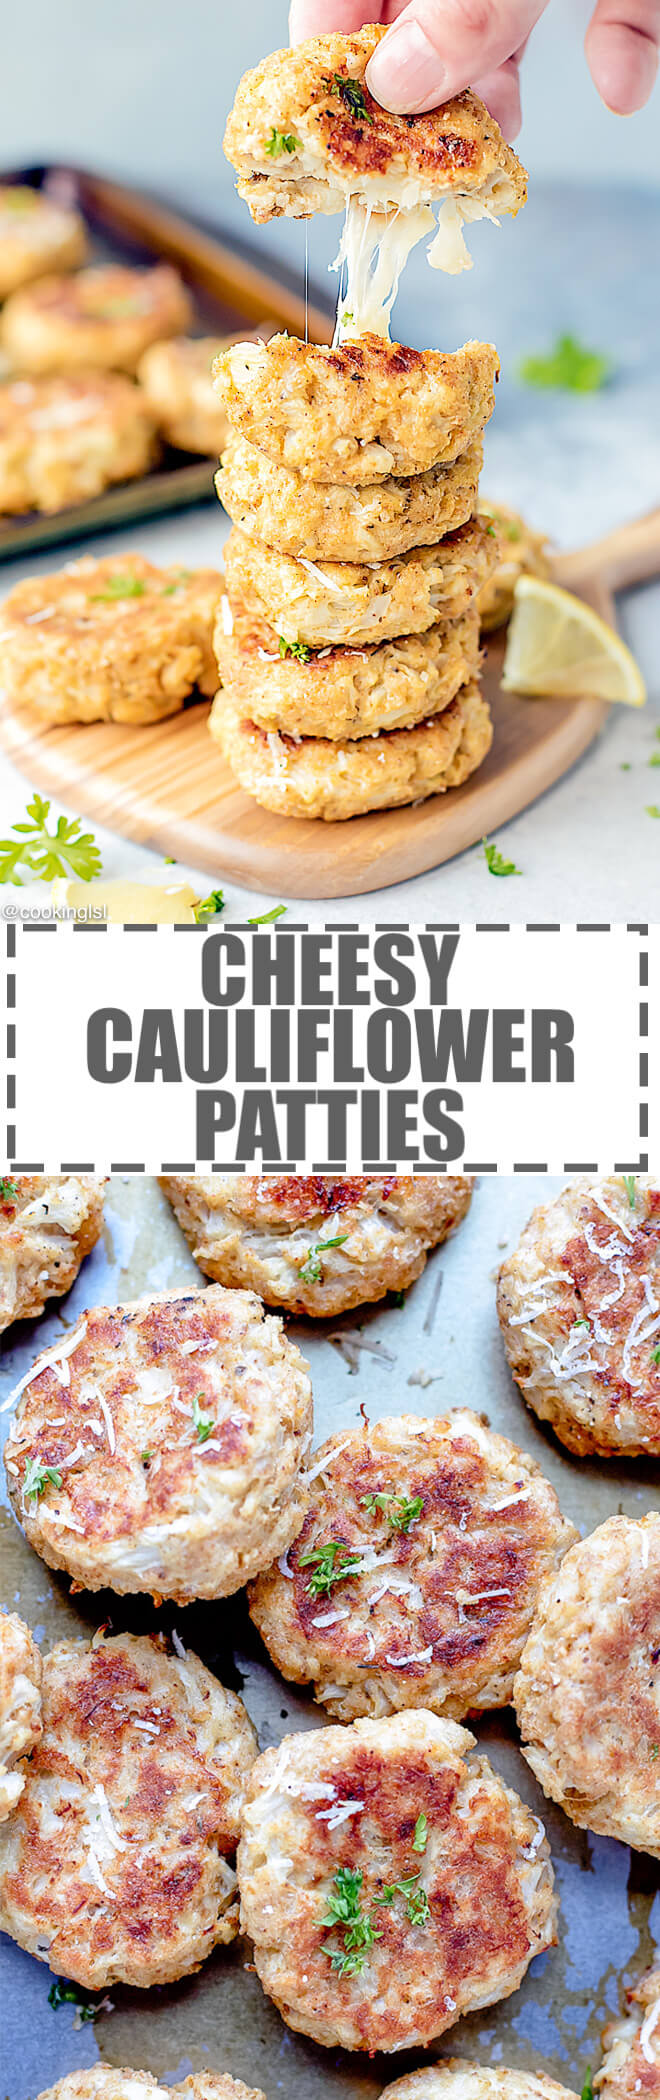 Cheesy Cauliflower Patties Recipe {Baked} - easy to make and fun to eat, these mini cauliflower and mozzarella patties are great for both kids and adults.